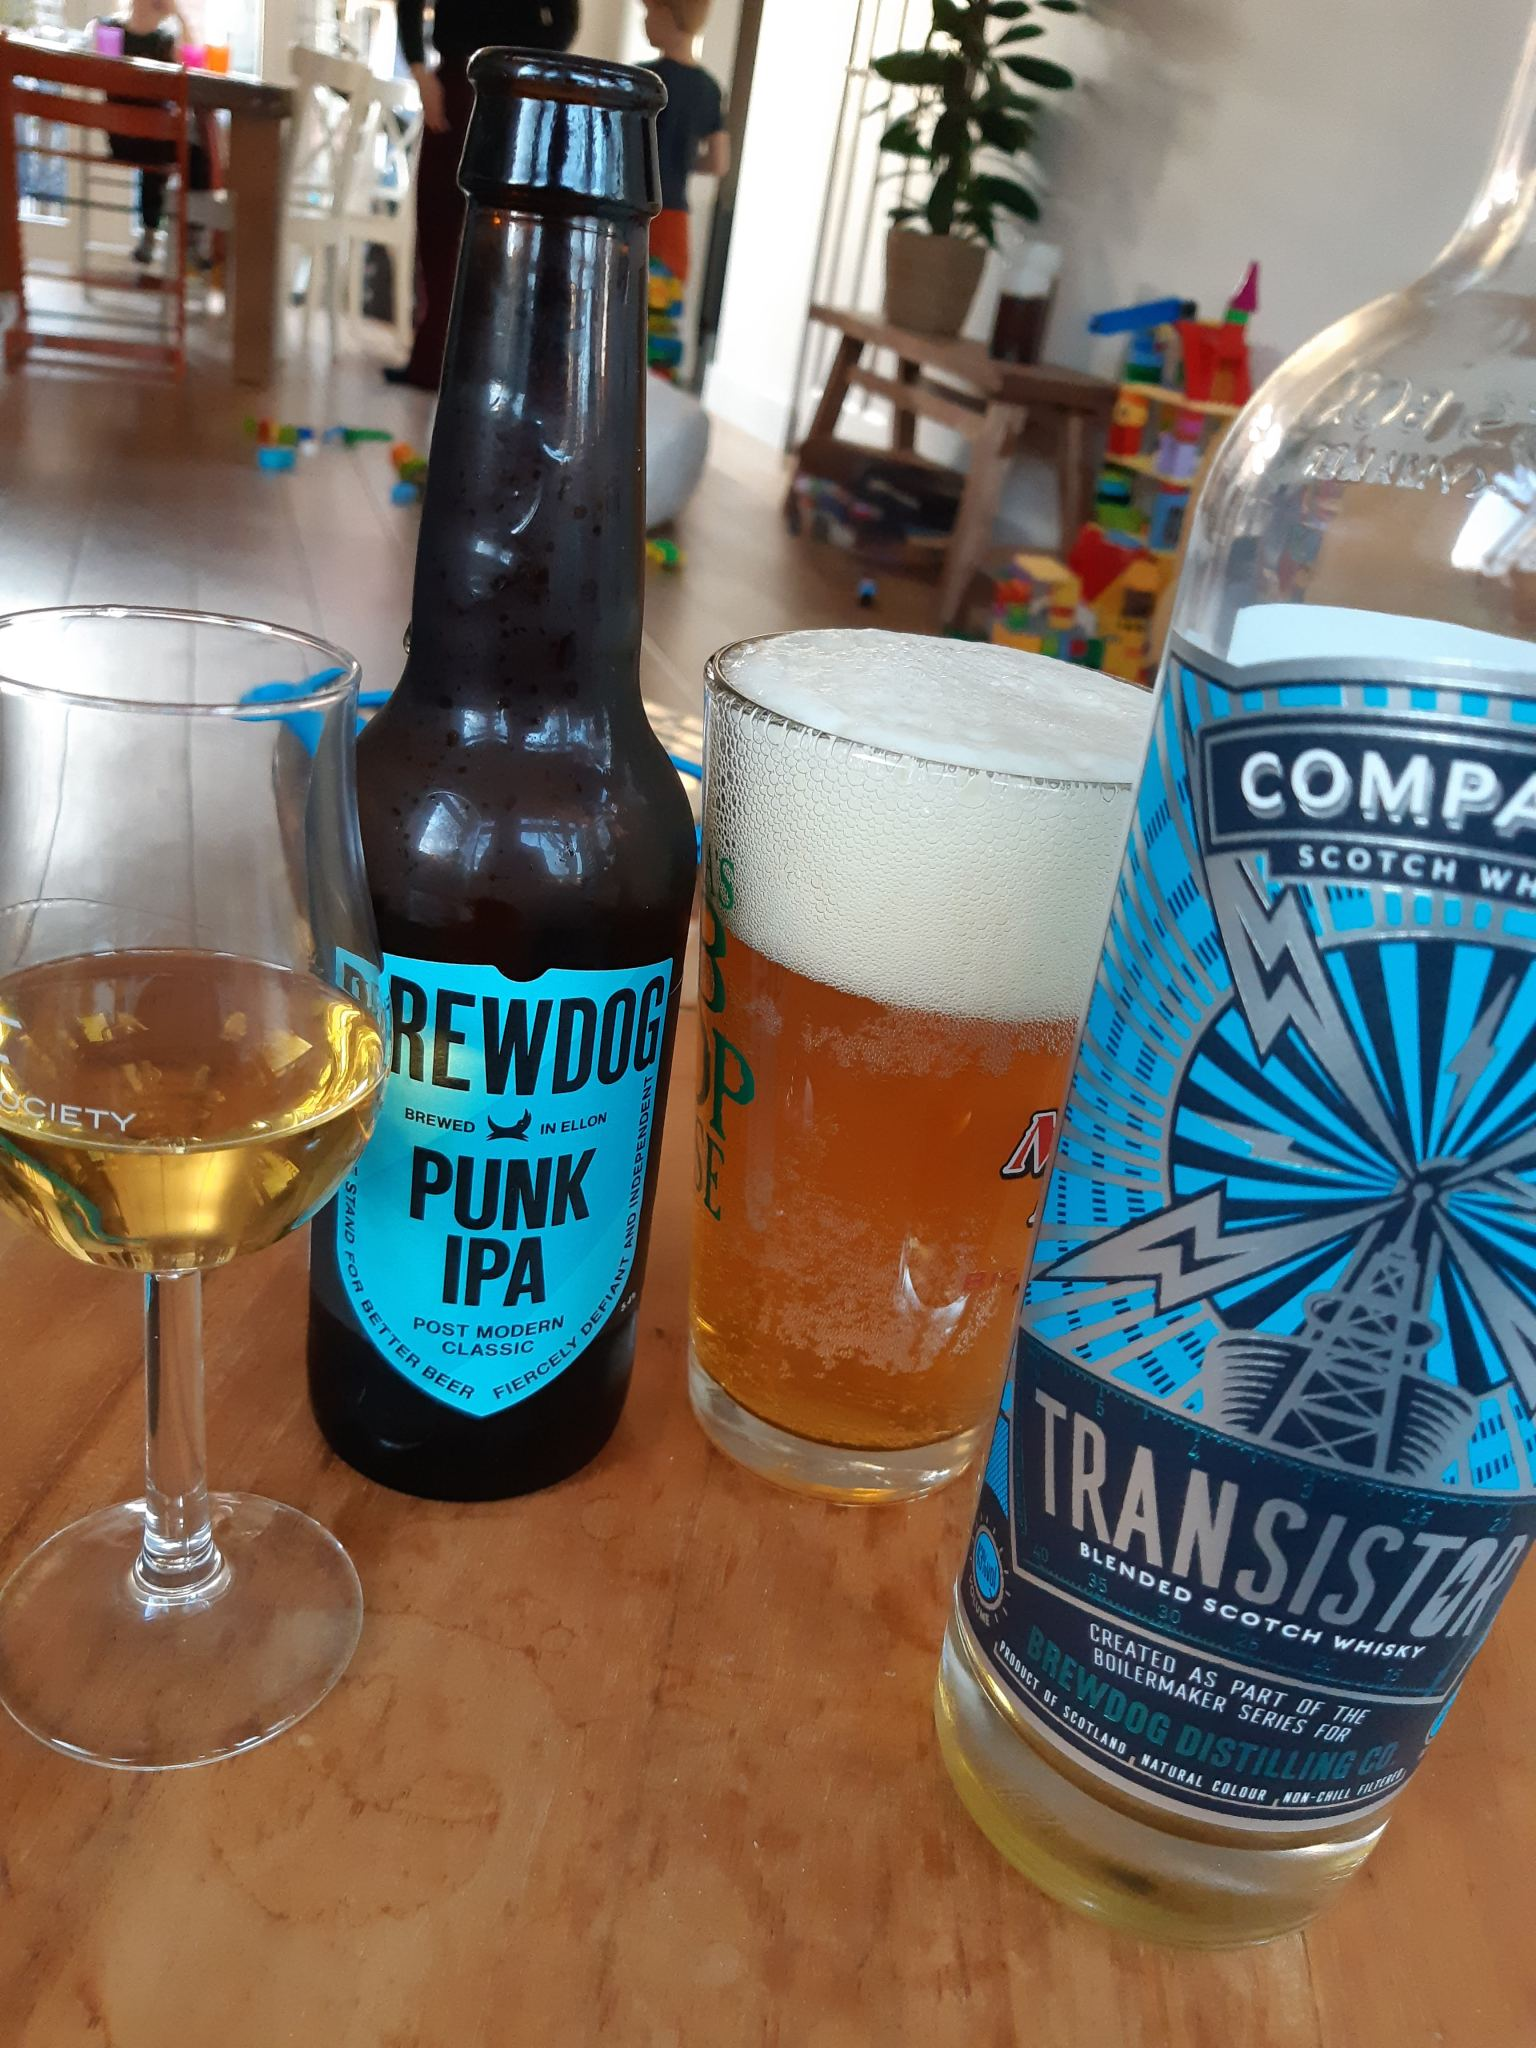 Transistor, Blended Scotch Whisky, 43% – Compass Box (and Punk IPA)